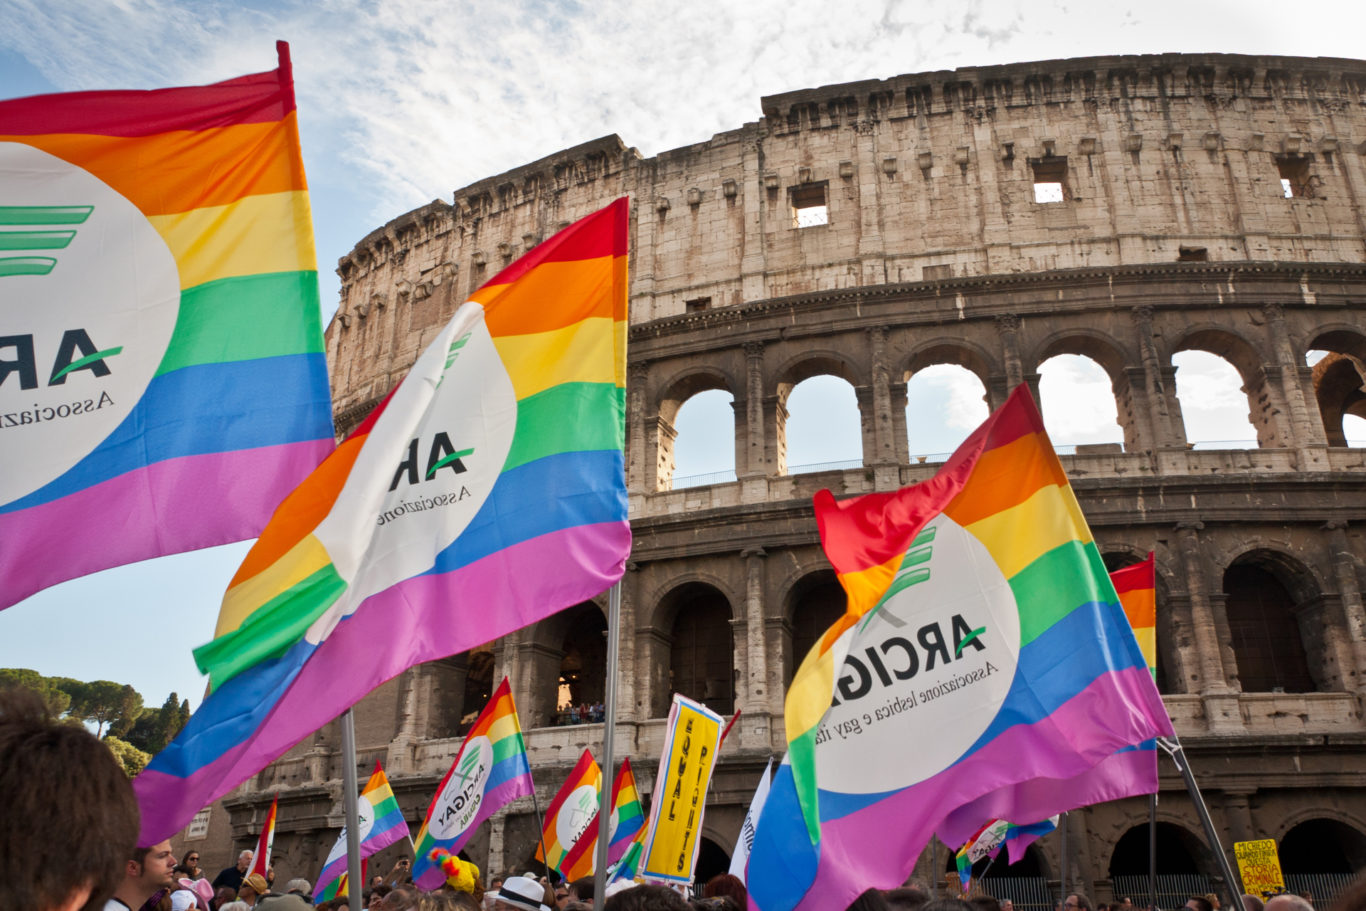 EuroPride 2011, Rome - Lesbian, bisexual, transgender, gay, intersex in parade on streets of Rome. more than 500.000 invaded the italian capital to claim their rights. From all over Europe come to italy for this day of peace, love and freedom. Many slogans and costumes were against church and Vatican to emphasize their discrimination against the gay world.